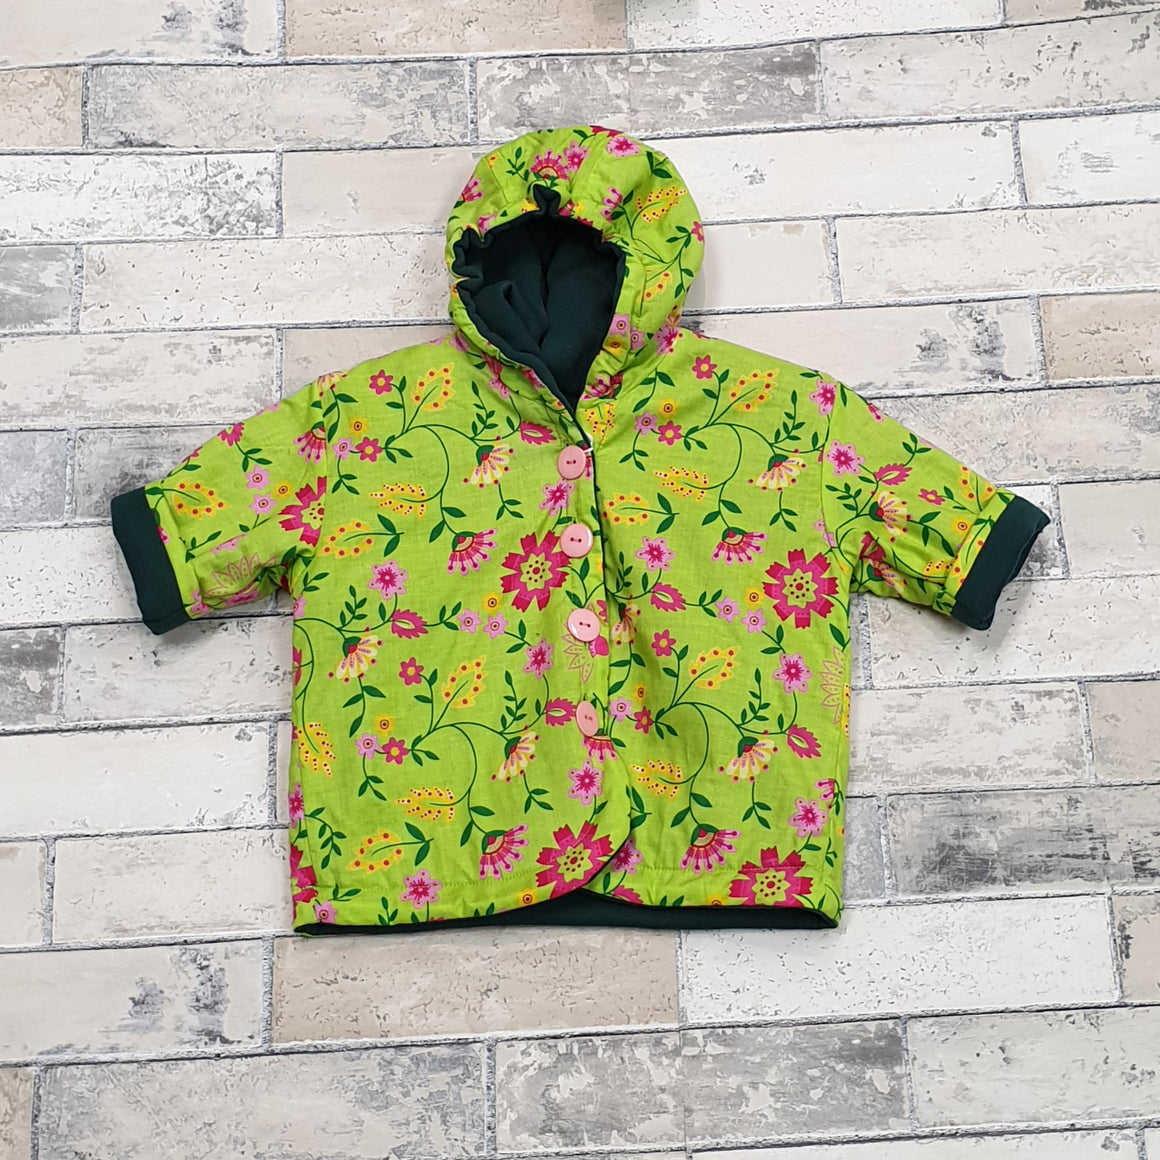 Lily Jacket - Green w/ Pink Flowers 1-2 yrs